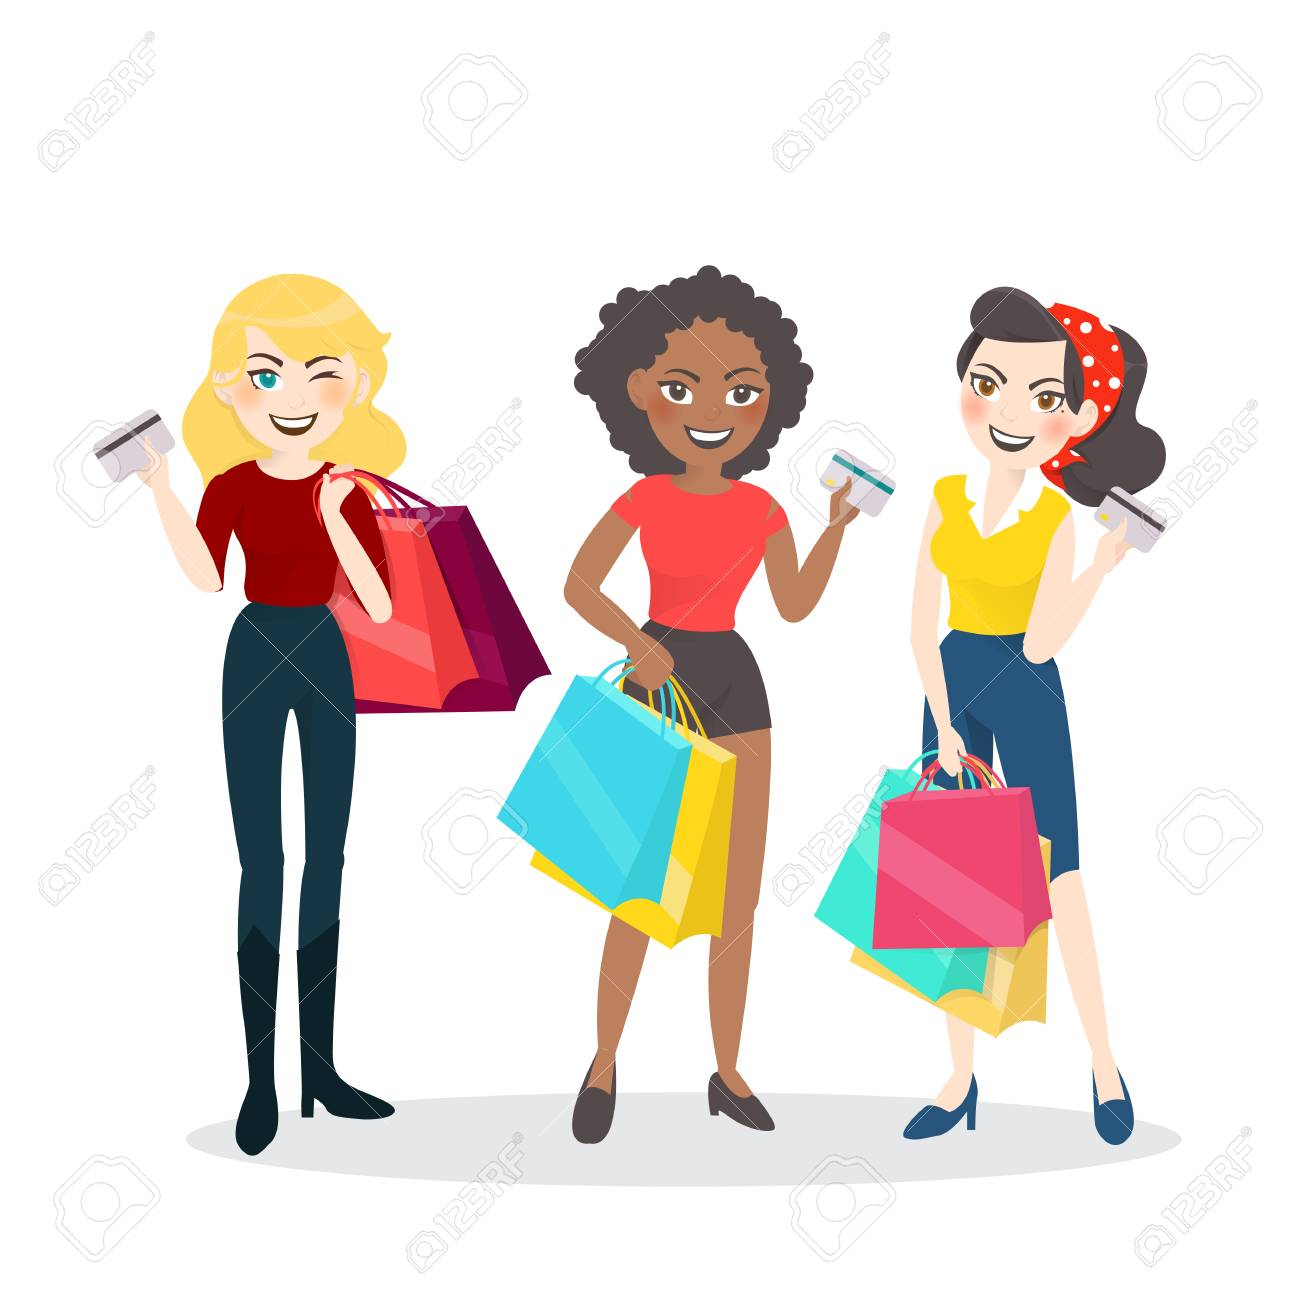 221a38da3f Cartoon woman group with shopping bag and credit card. Stock Vector -  73797978